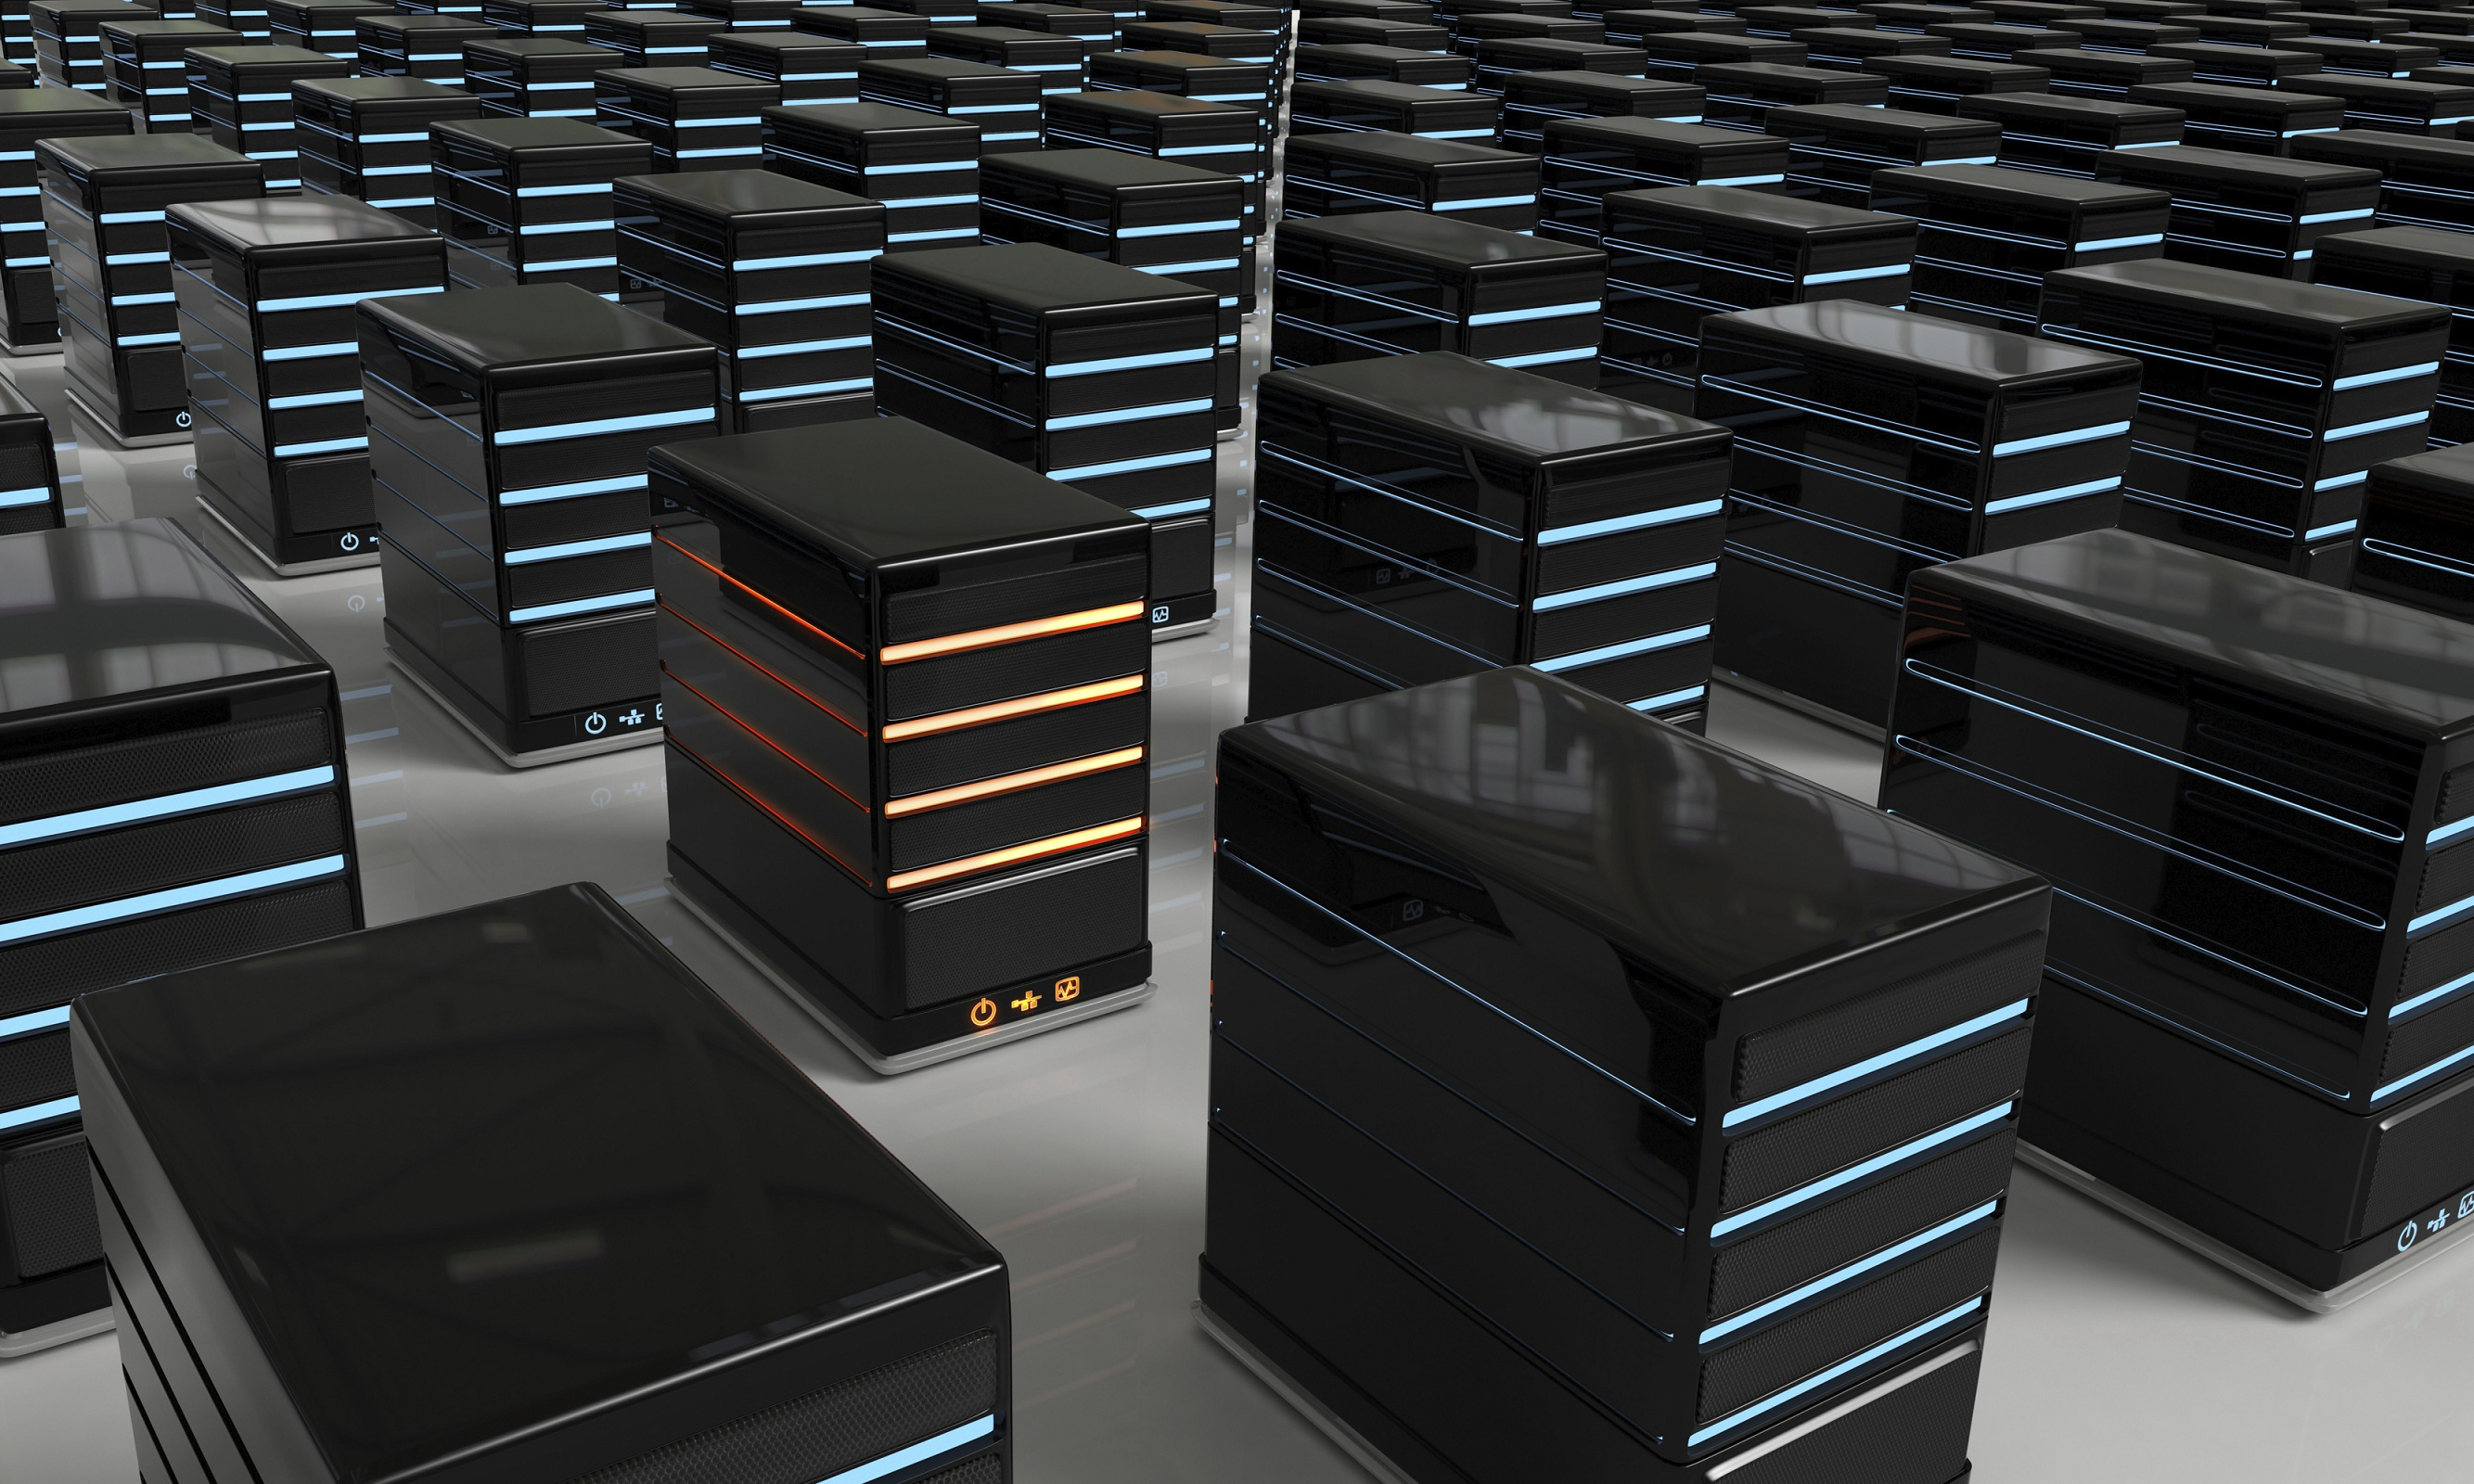 3D rendered illustration of blue led Network Servers arranged in a grid formation, with a unique, red led server among them